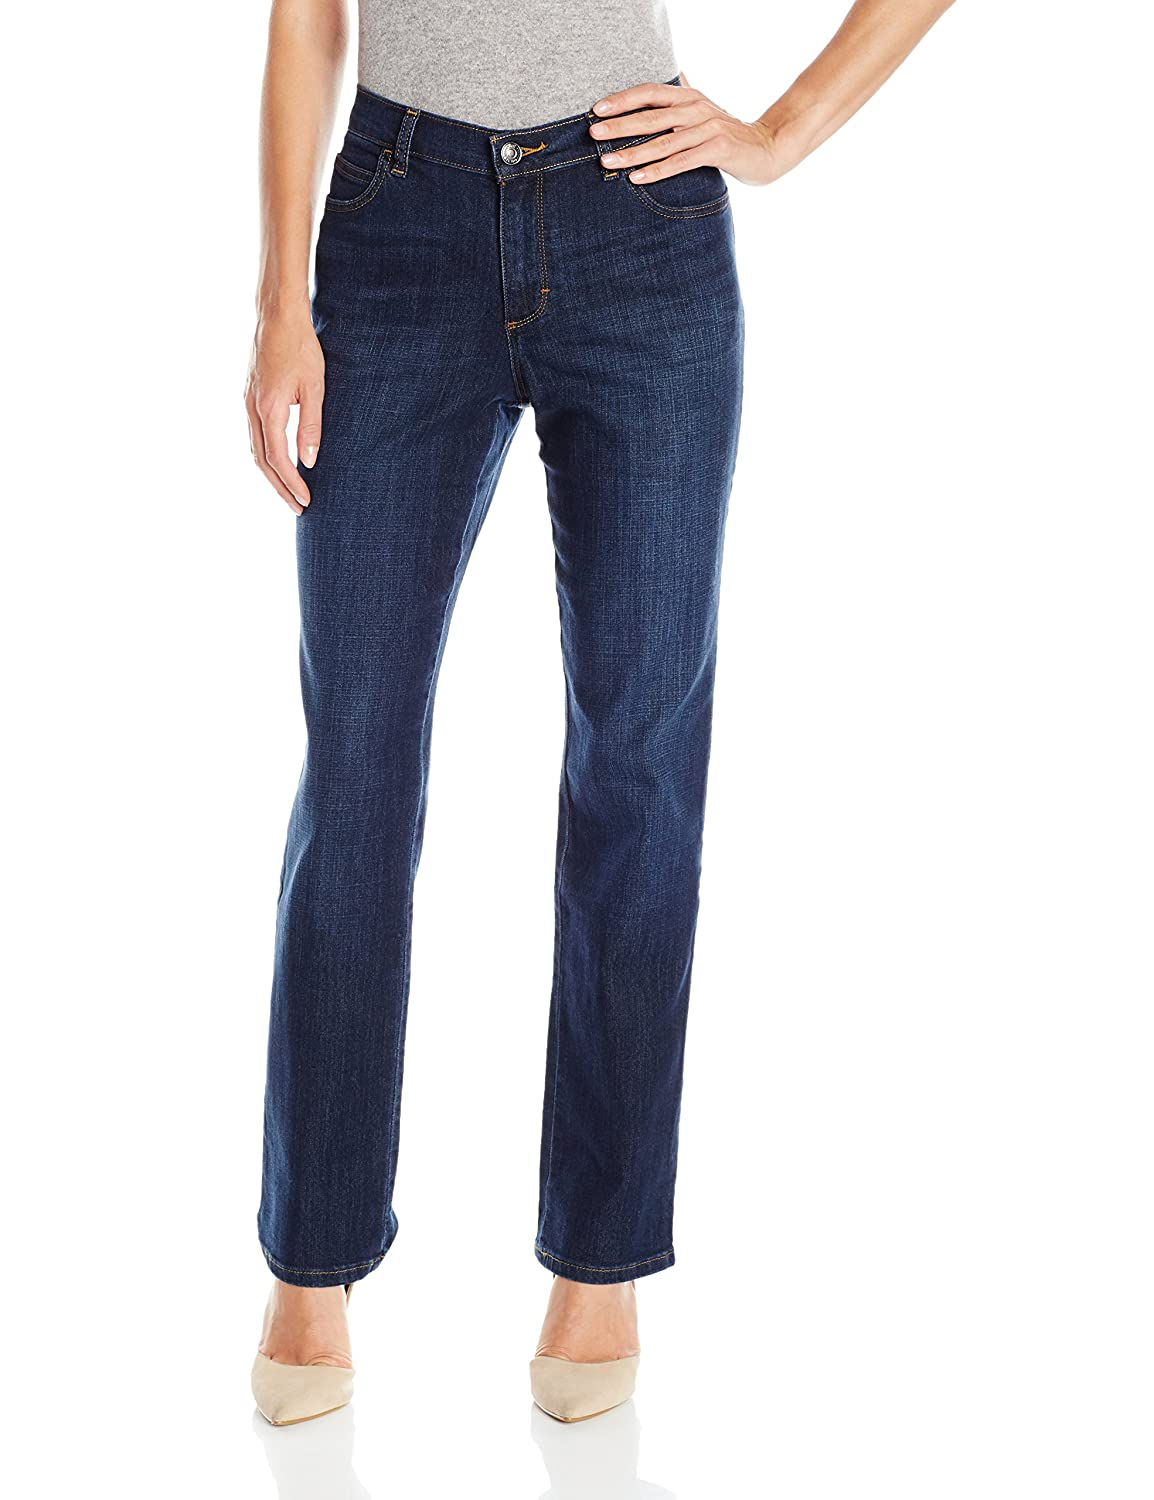 LEE Women's Relaxed Fit Straight Leg Jeans with Stitched Back Pockets